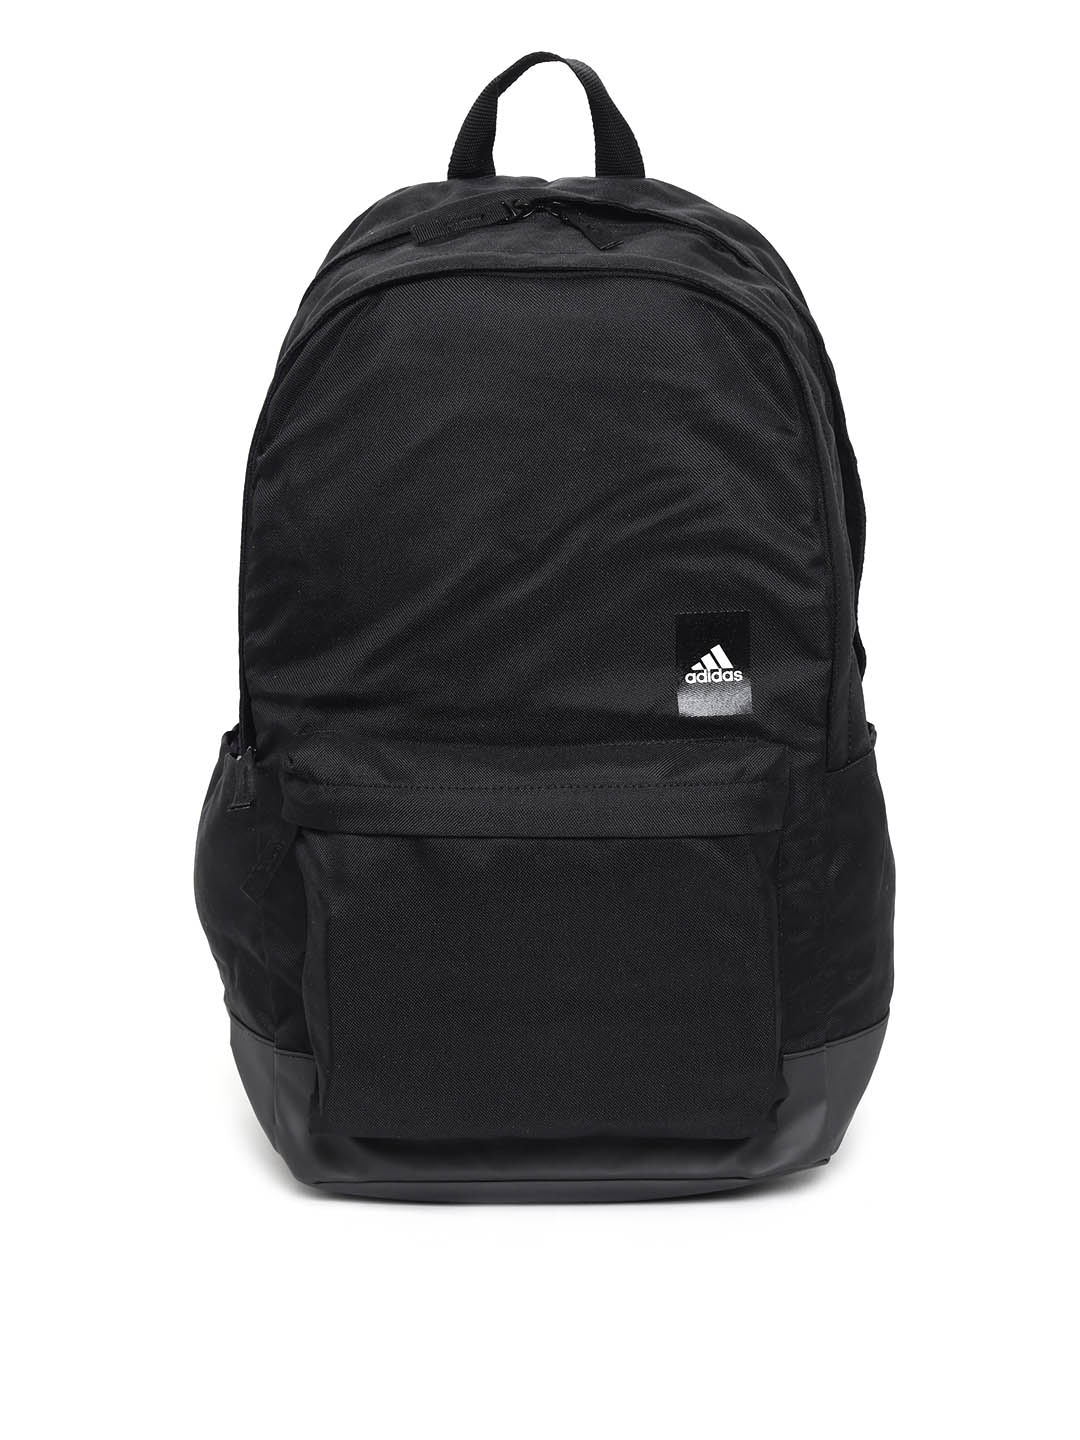 Adidas Backpacks Clutches - Buy Adidas Backpacks Clutches online in India f59c971d5b817